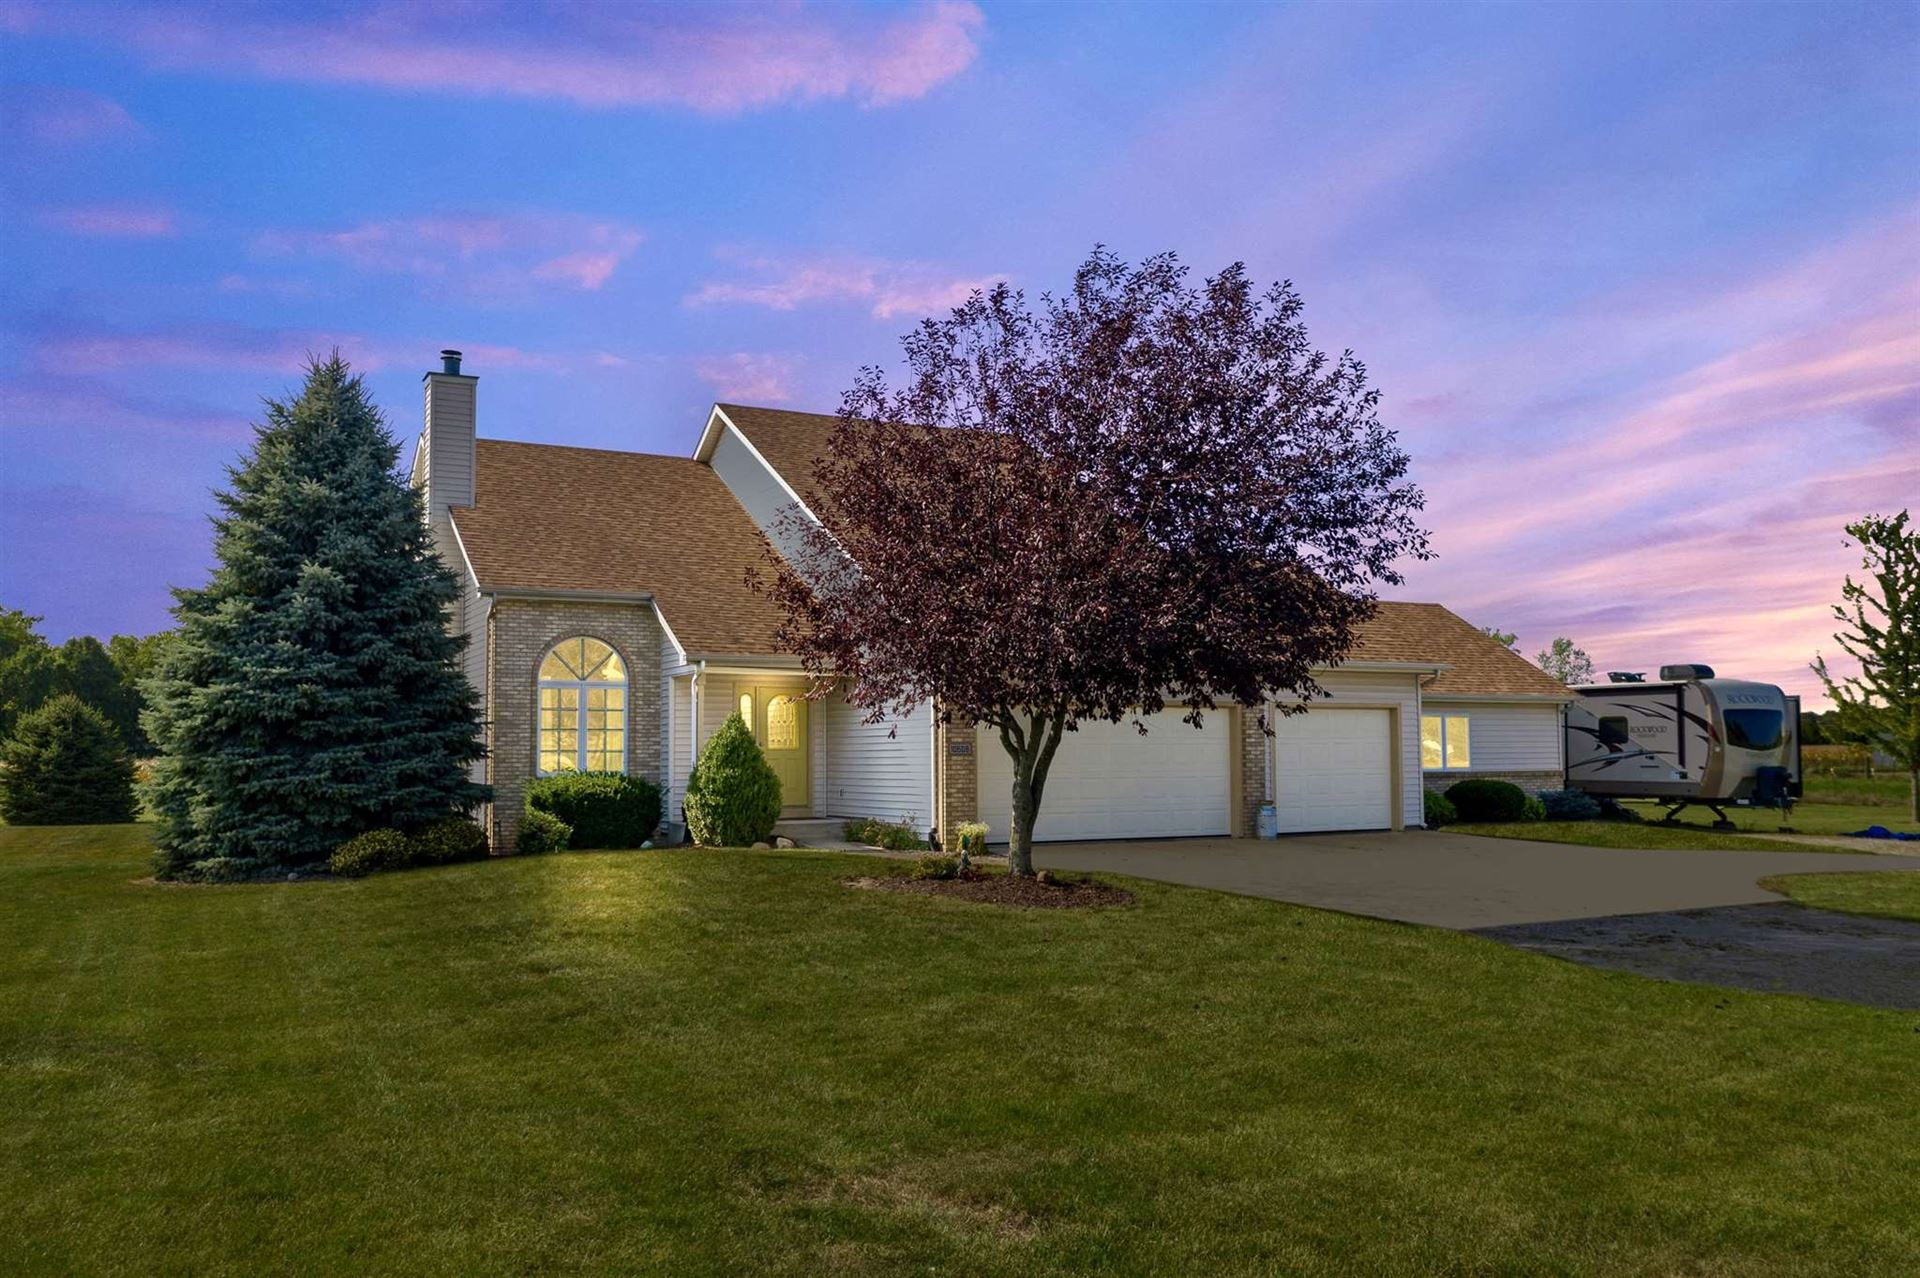 Bhhs Indiana New Home Listings